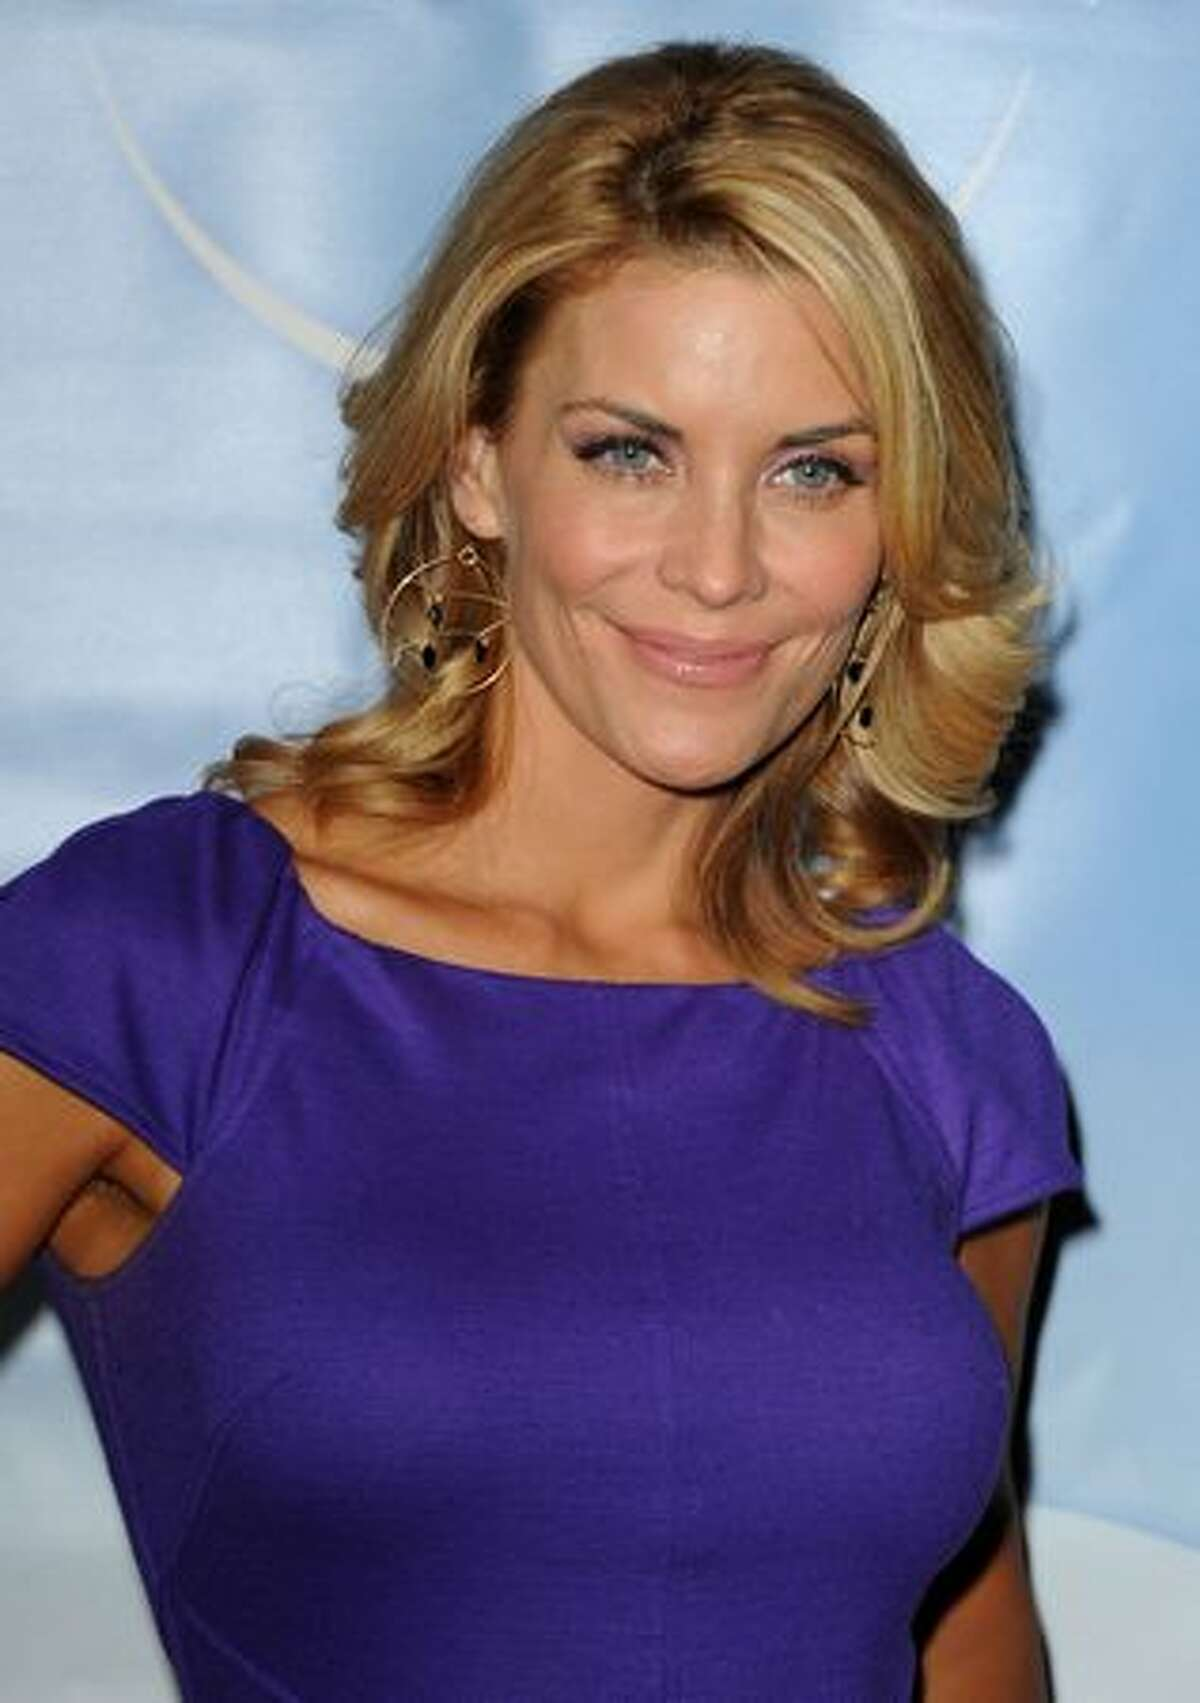 Actress McKenzie Westmore arrives at the NBC Universal 2011 Winter TCA Press Tour All-Star Party at the Langham Huntington Hotel in Pasadena, California.